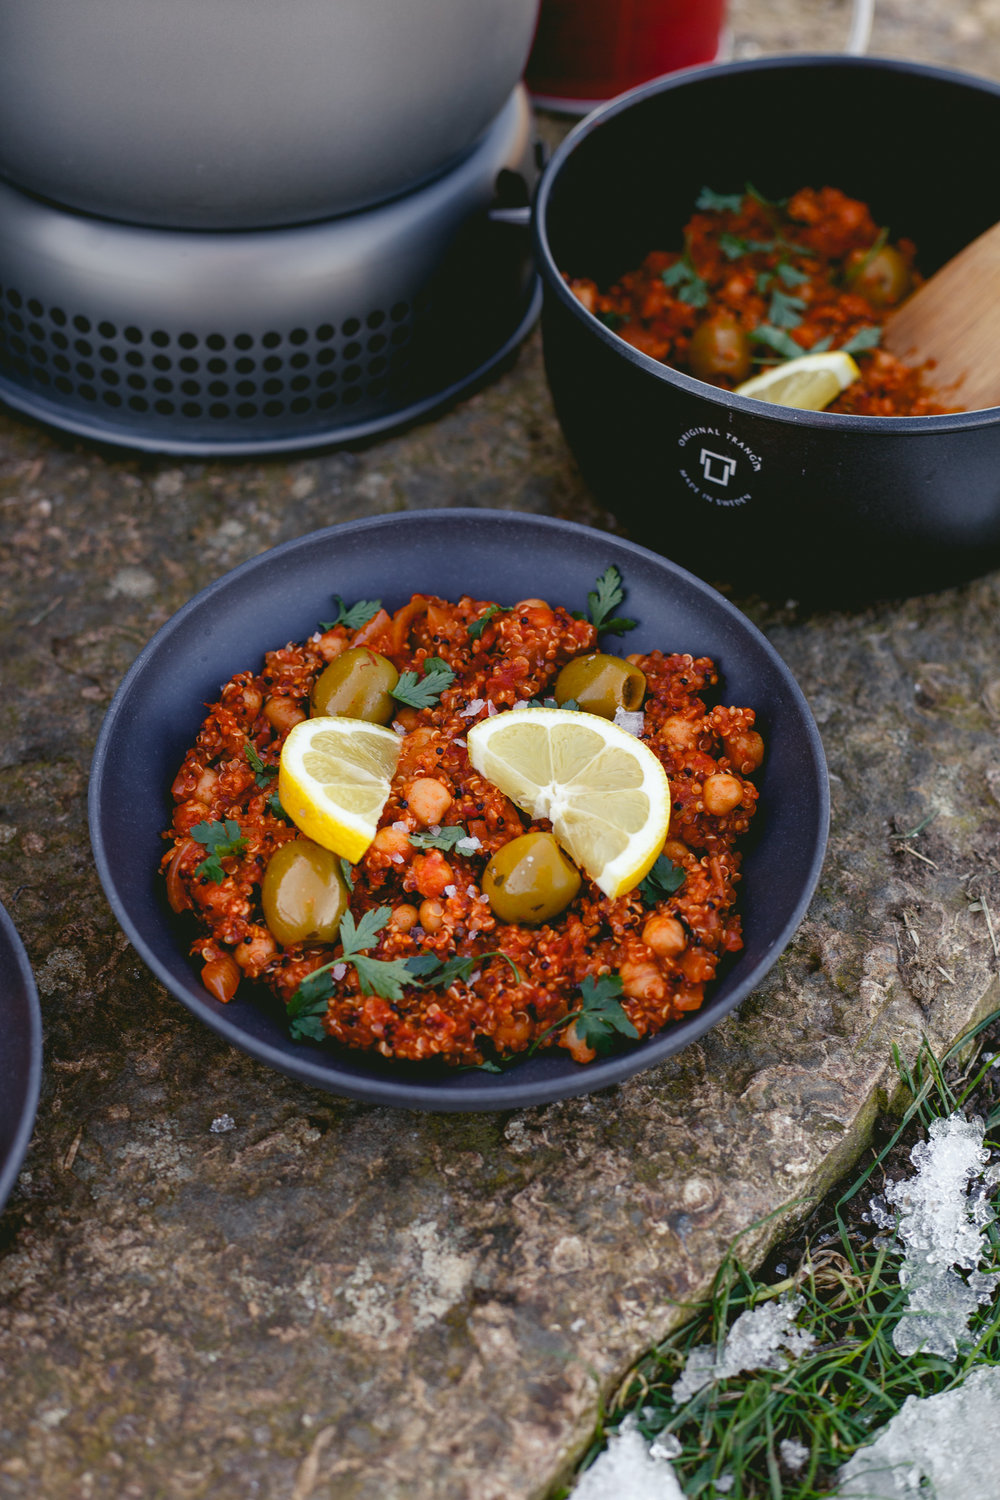 Ingredients - 2 tbsp smoked rapeseed oil (or olive oil)2 tsp smoked paprika1 tsp each cumin seeds, fennel seeds, rosemary + oregano1 large yellow onion, thinly sliced1 cup dry quinoa1 x 400g tin chickpeas, drained1 x 400g tin chopped tomatoes2 cups vegetable stock100g olivesFresh parsley1 x lemon to serveSea salt